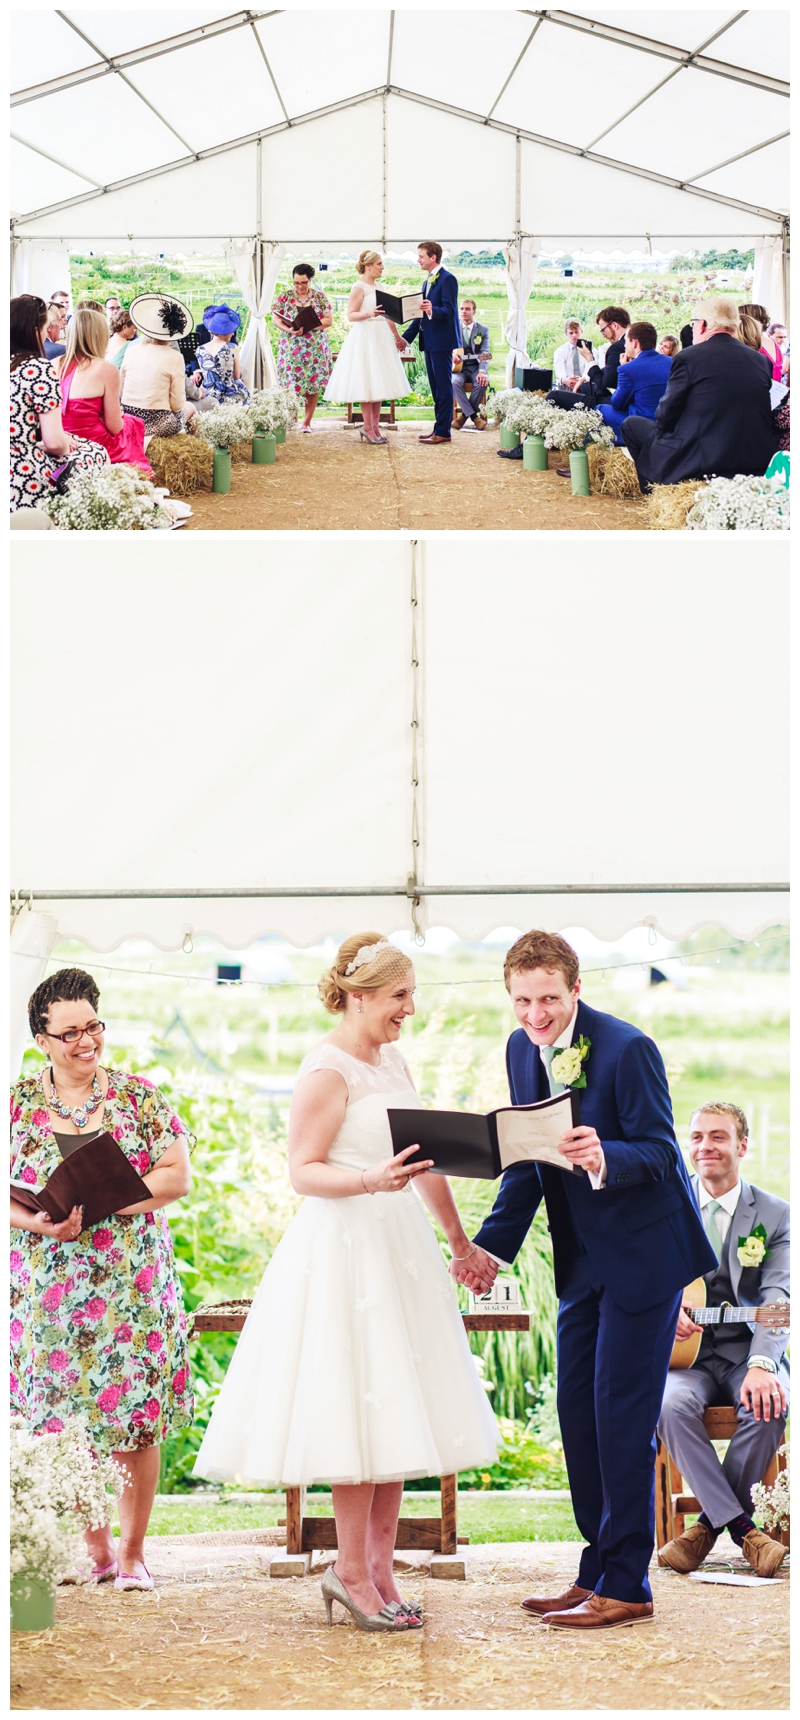 Jimmy's Farm Wedding, Ipswich, Suffolk_0055